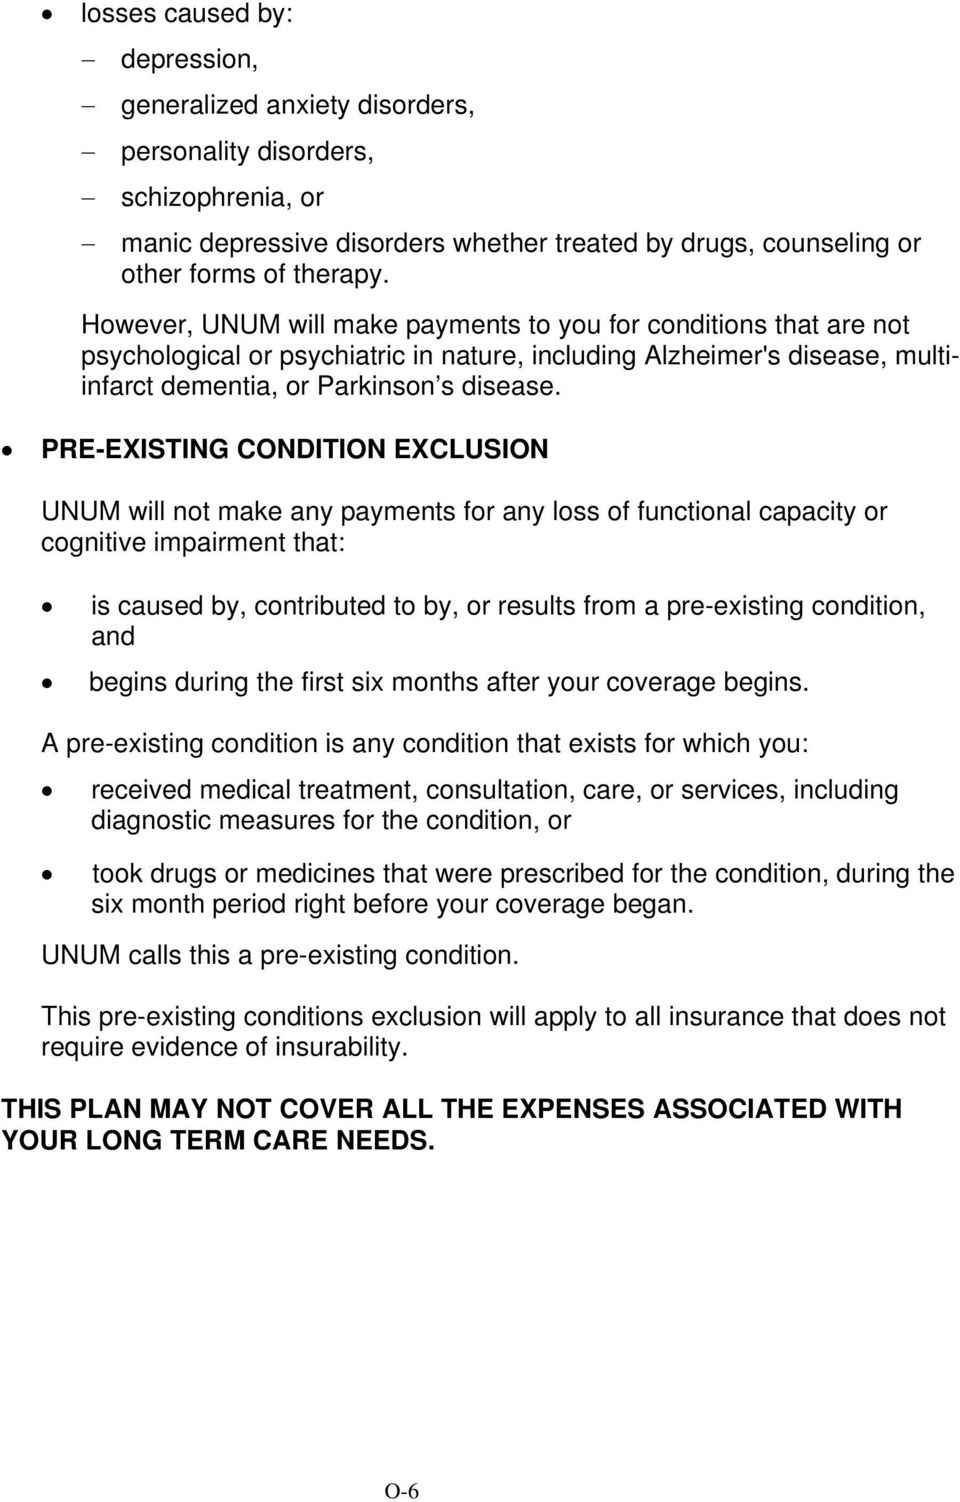 PRE-EXISTING CONDITION EXCLUSION UNUM will not make any payments for any loss of functional capacity or cognitive impairment that: is caused by, contributed to by, or results from a pre-existing